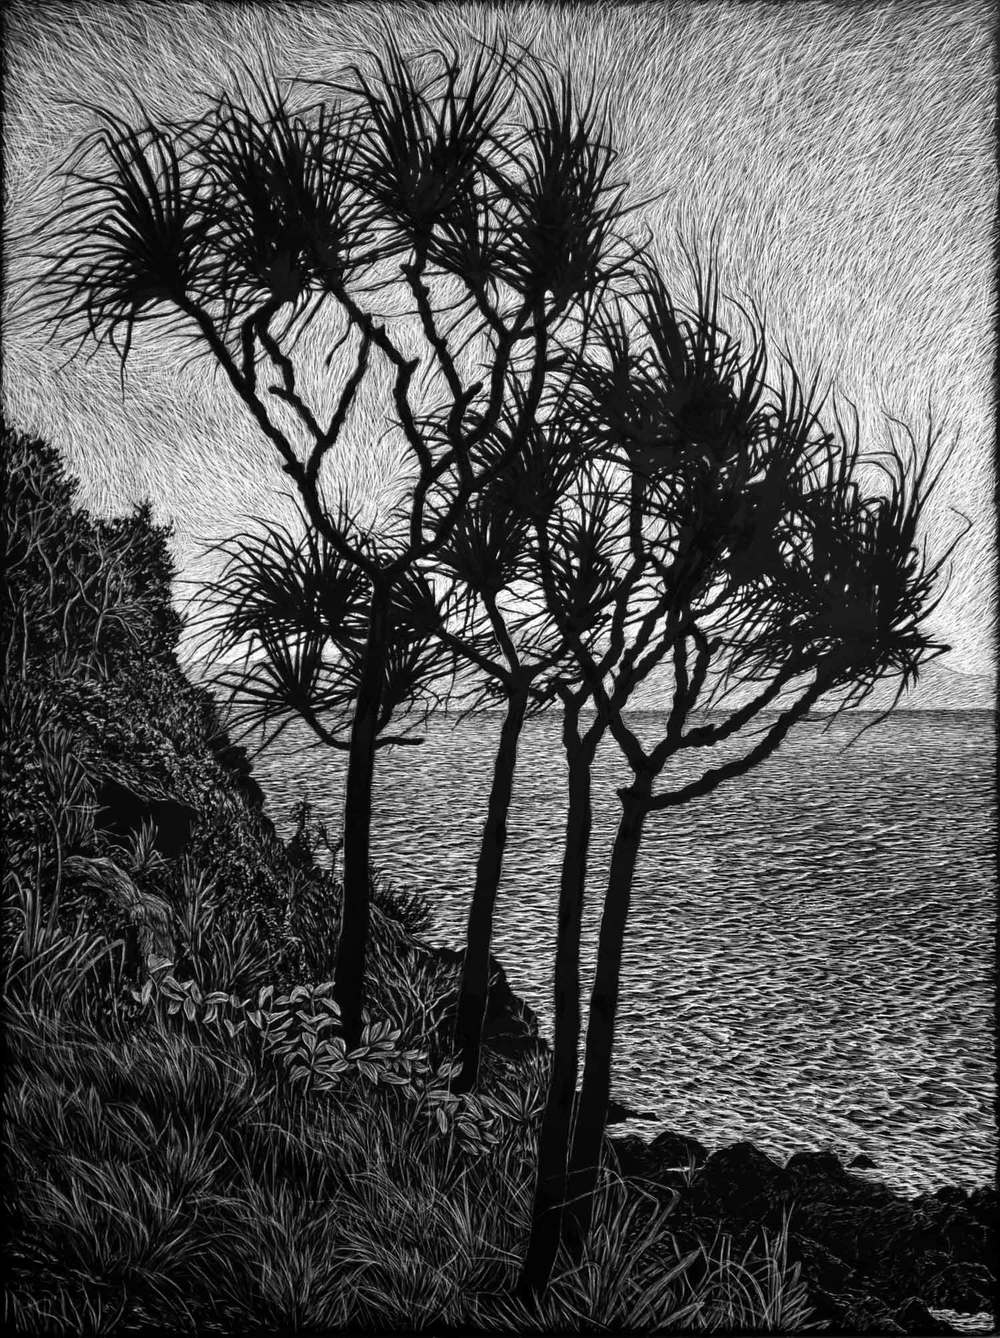 HEADLAND WITH PANDANUS  61 X 45.5 CM    EDITION OF 50  PIGMENT ON COTTON RAG PAPER  $1,100  also available 75 x 56 cm $1,350